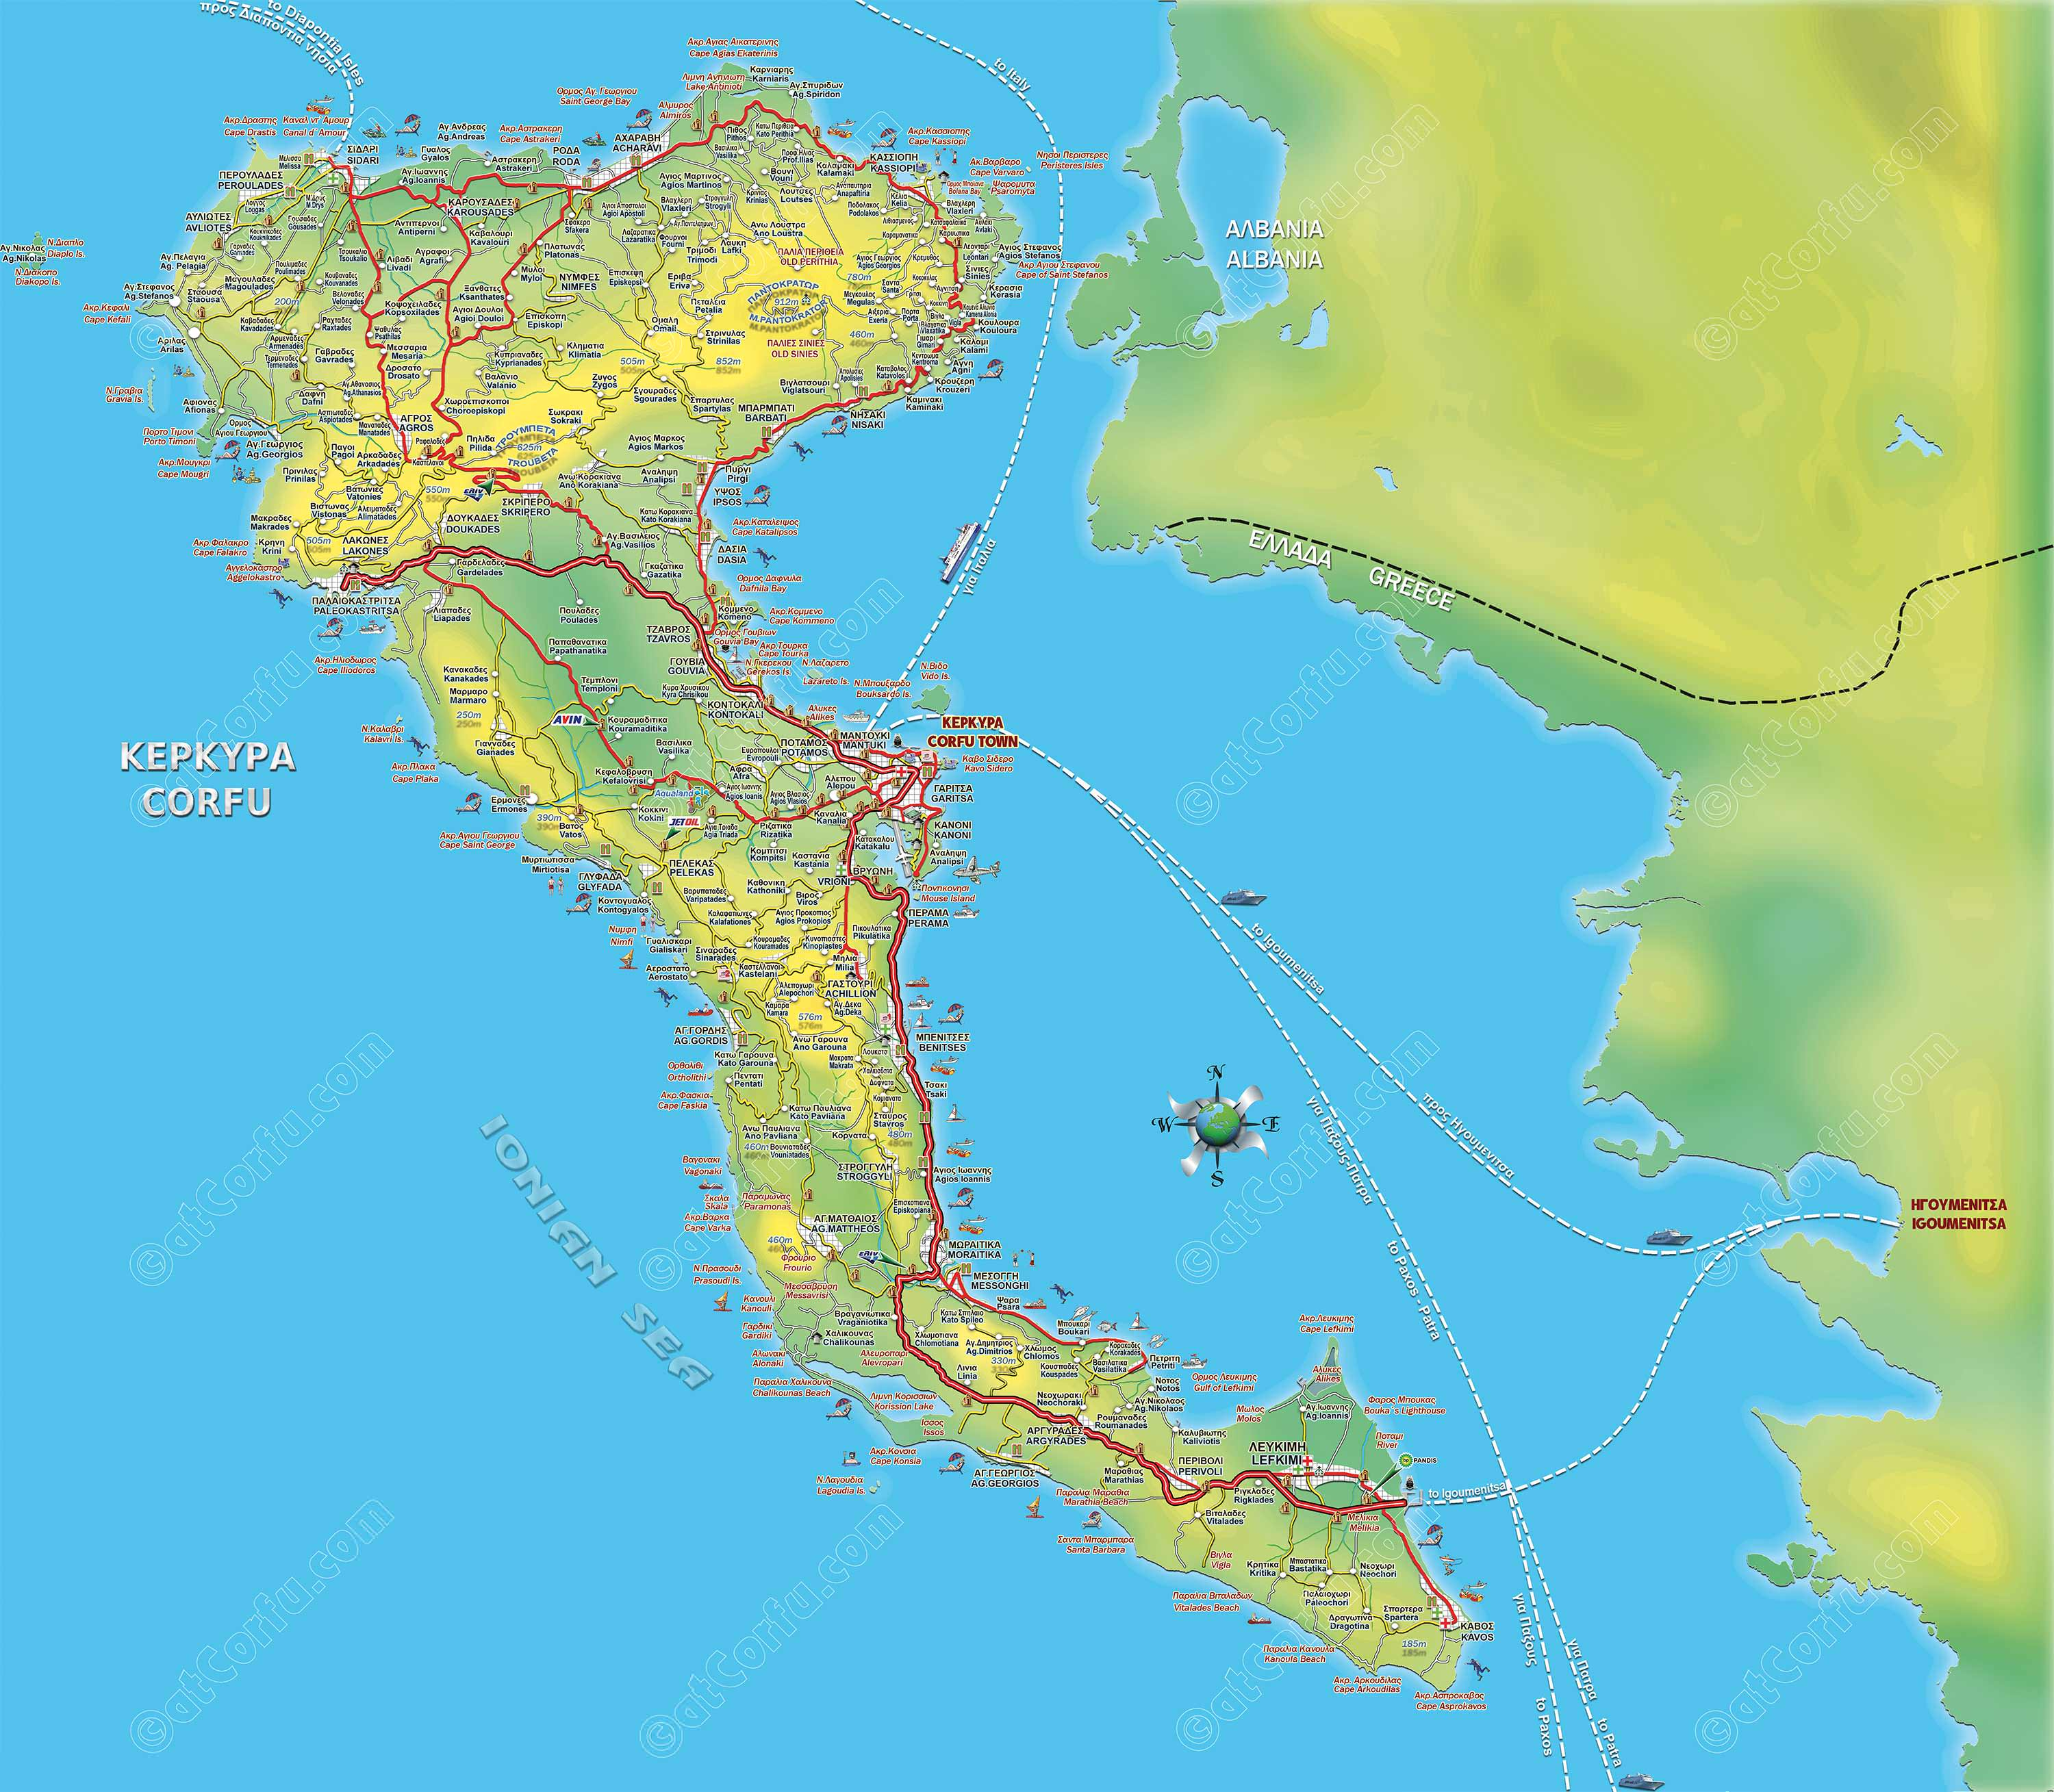 Corfu Greece map